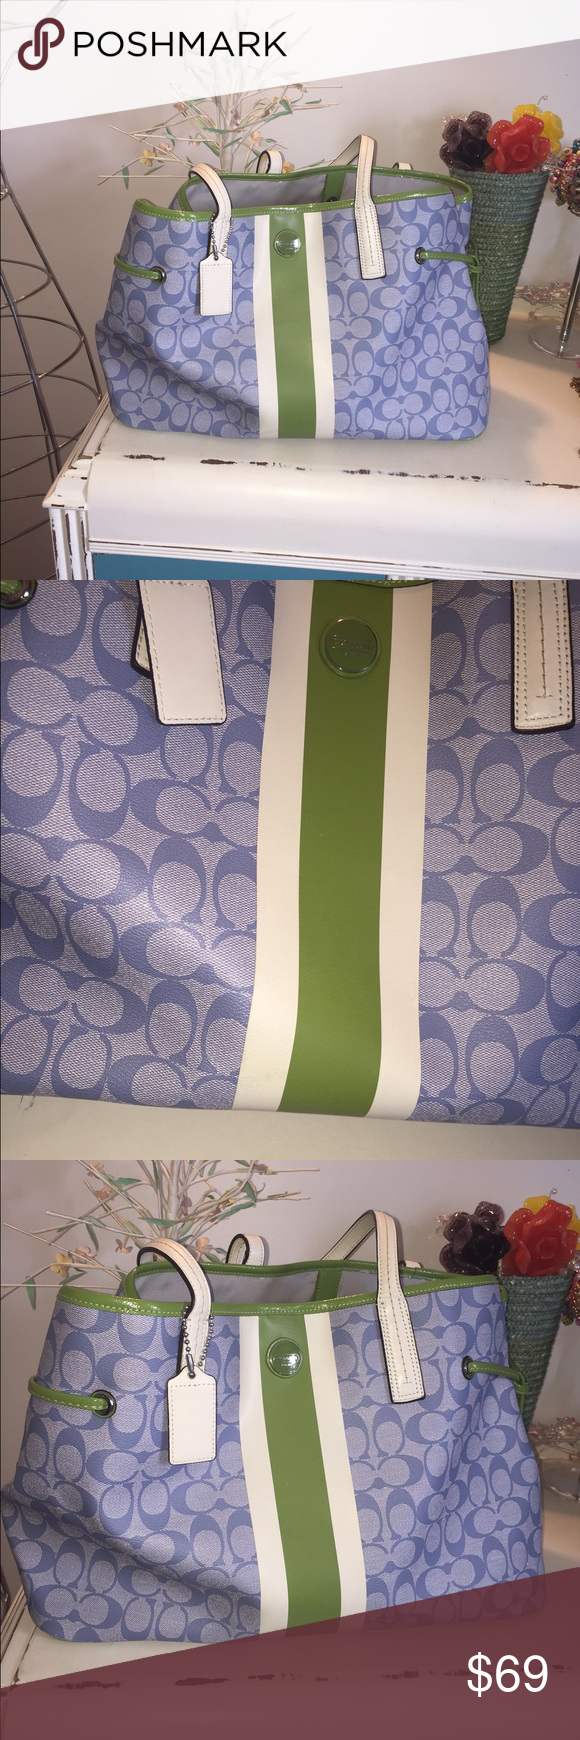 Coach tote used Blue and green coach tote measures 17 in by 11 in about 6 inches depth, lots of pockets inside. See additional pics listing :) there are some marks on the side, bottom, and the bottom of the front please see additional pics for details Coach Bags Totes